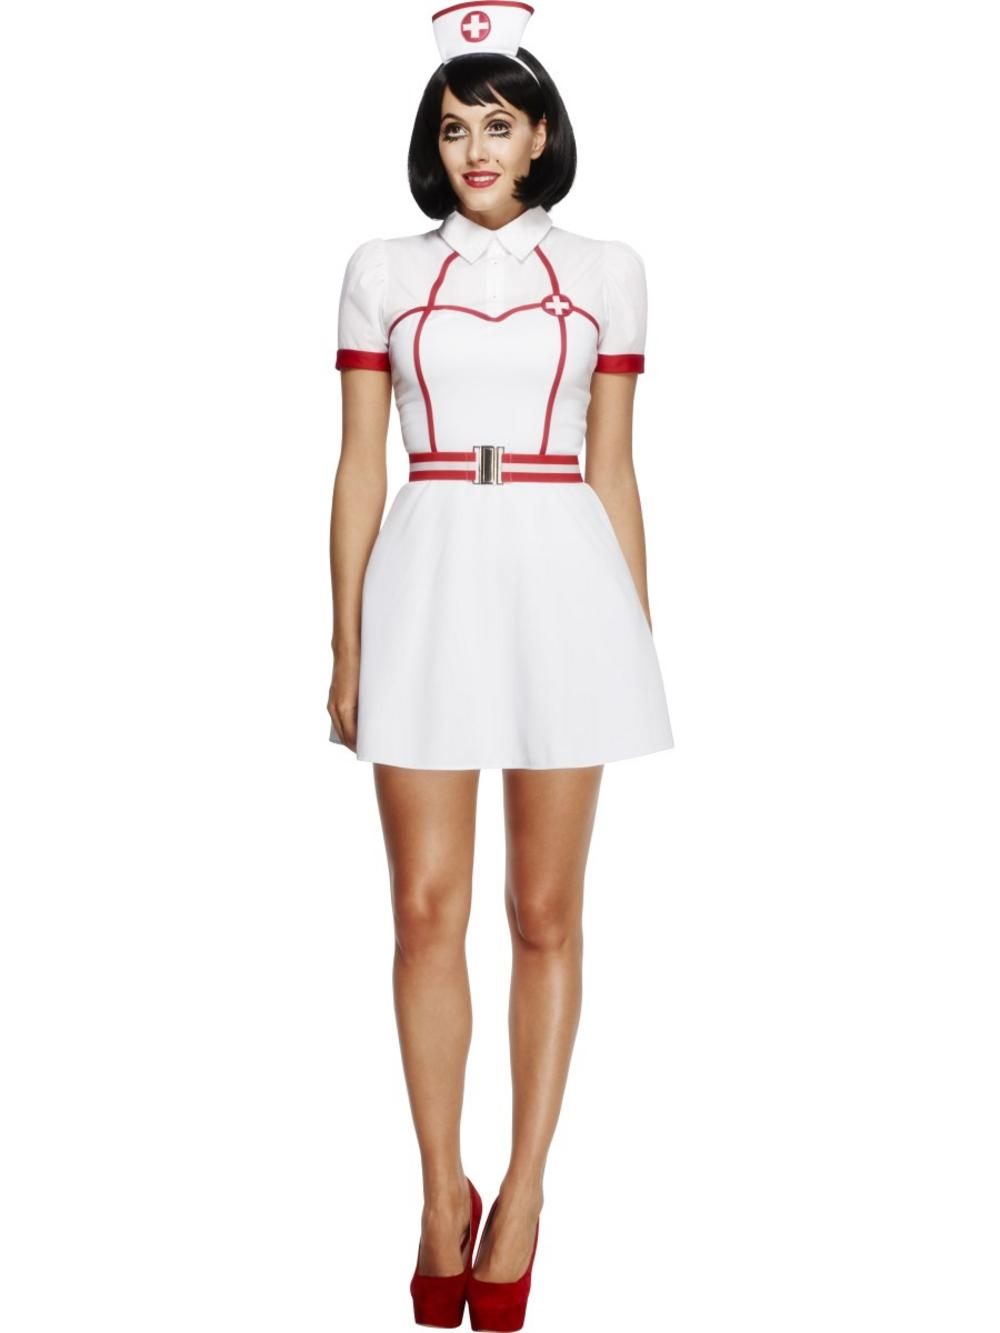 Fever Bed Side Nurse Ladies Costume